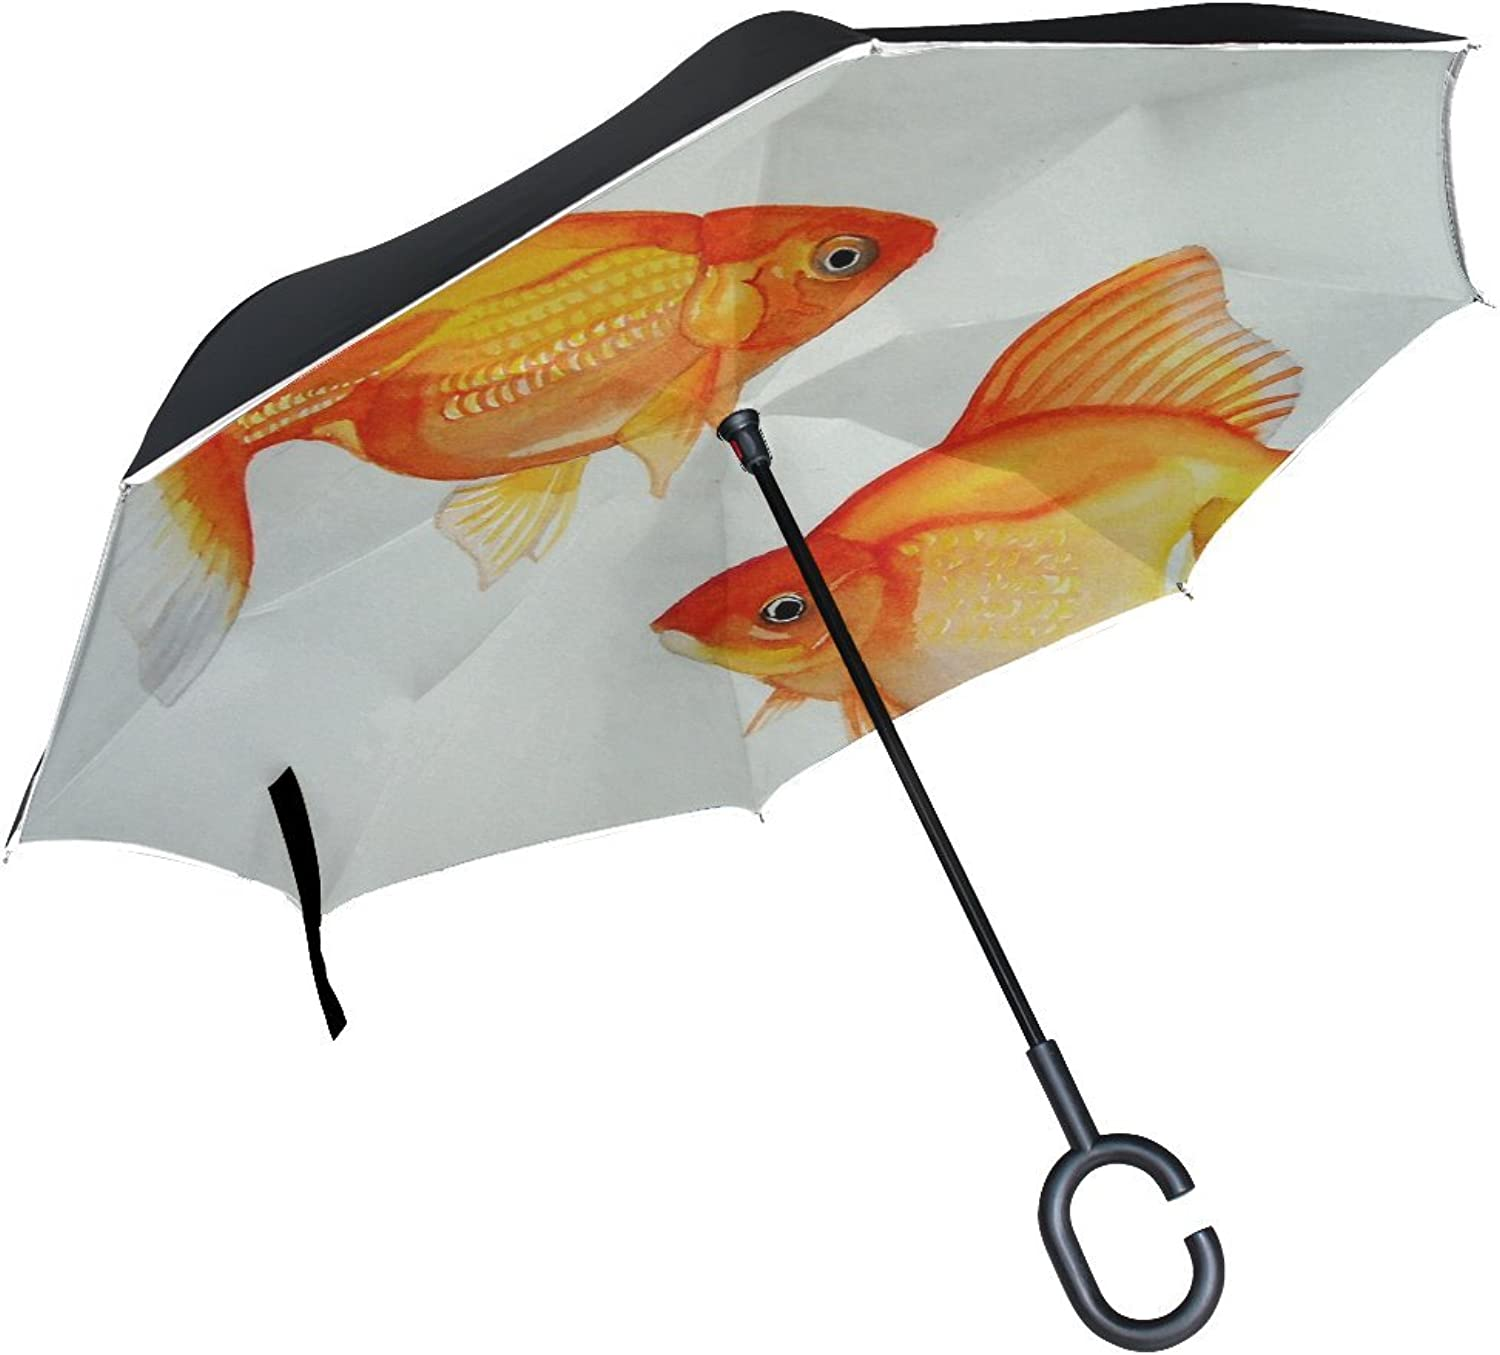 Animal Fish Butterfly Tail Adorable Little Water Sea Cute Mix Ingreened Umbrella Large Double Layer Outdoor Rain Sun Car Reversible Umbrella